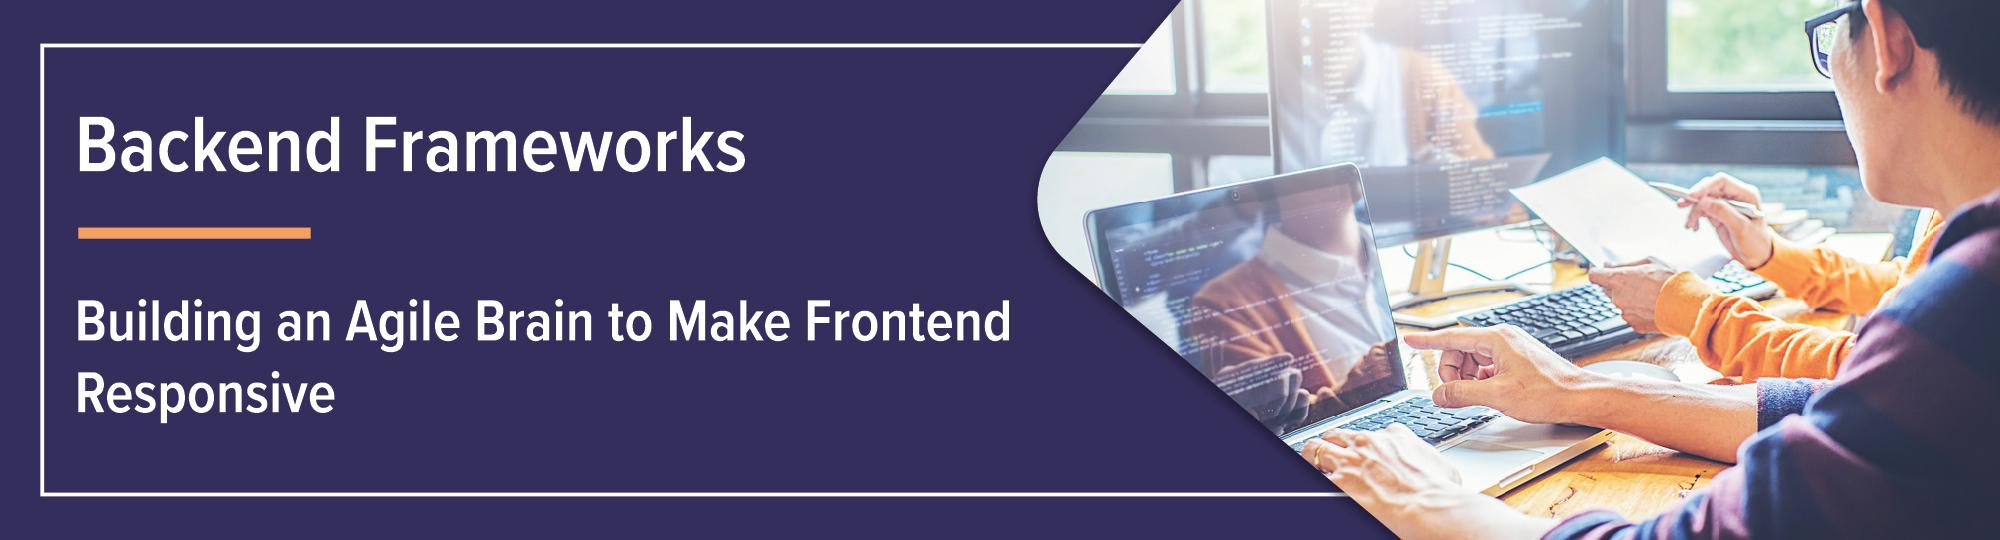 Top 7 Web Development Backend Frameworks In 2019